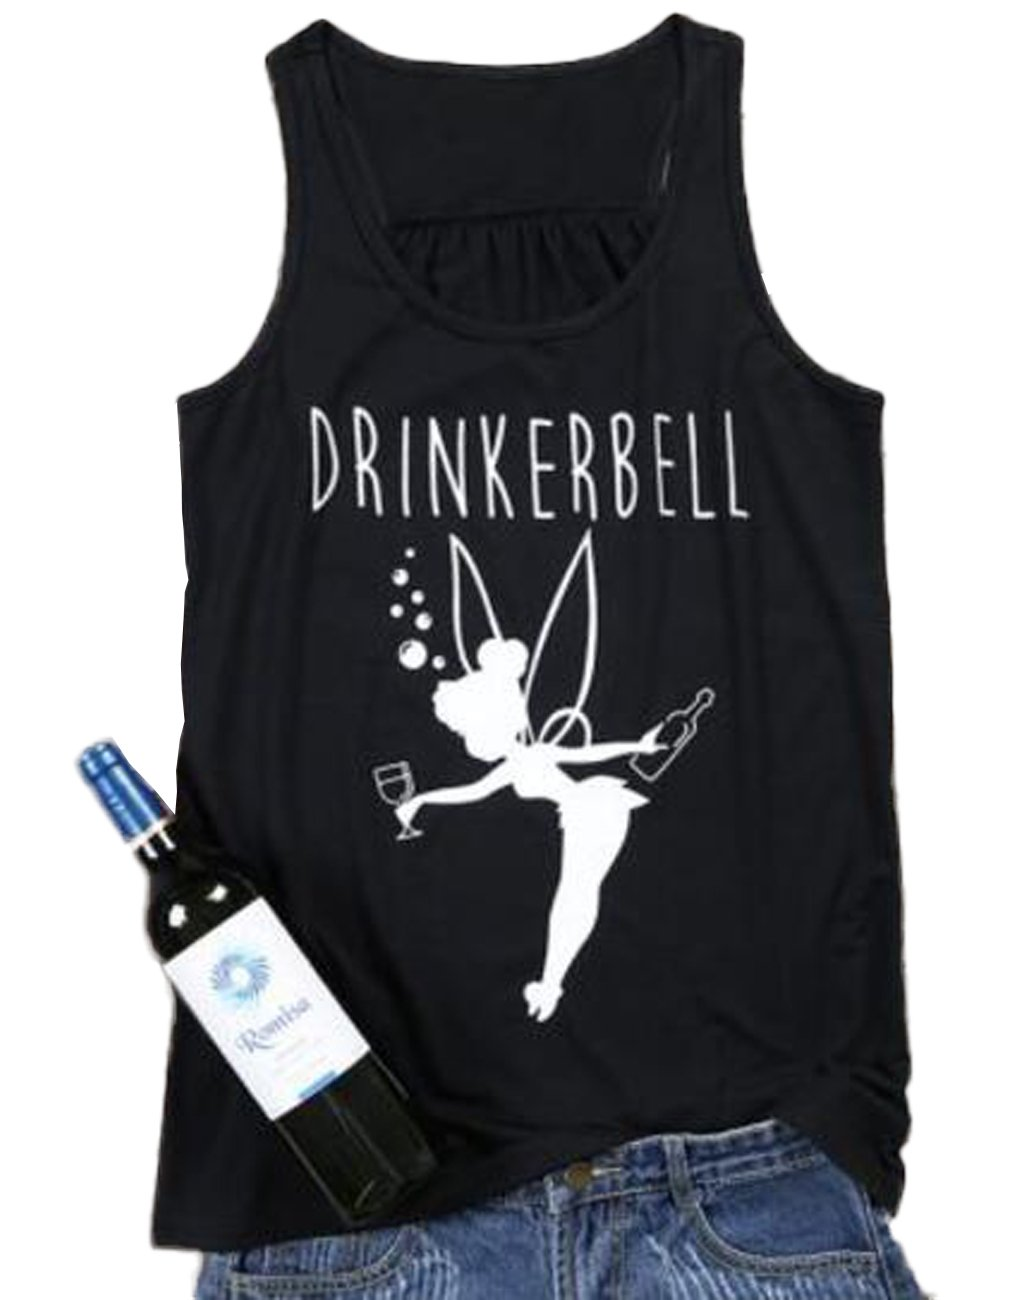 FAYALEQ Drinkerbell Fairy O-Neck Tank Top Women Casual Printed Sleeveless Funny T-Shirt Size L (Black)